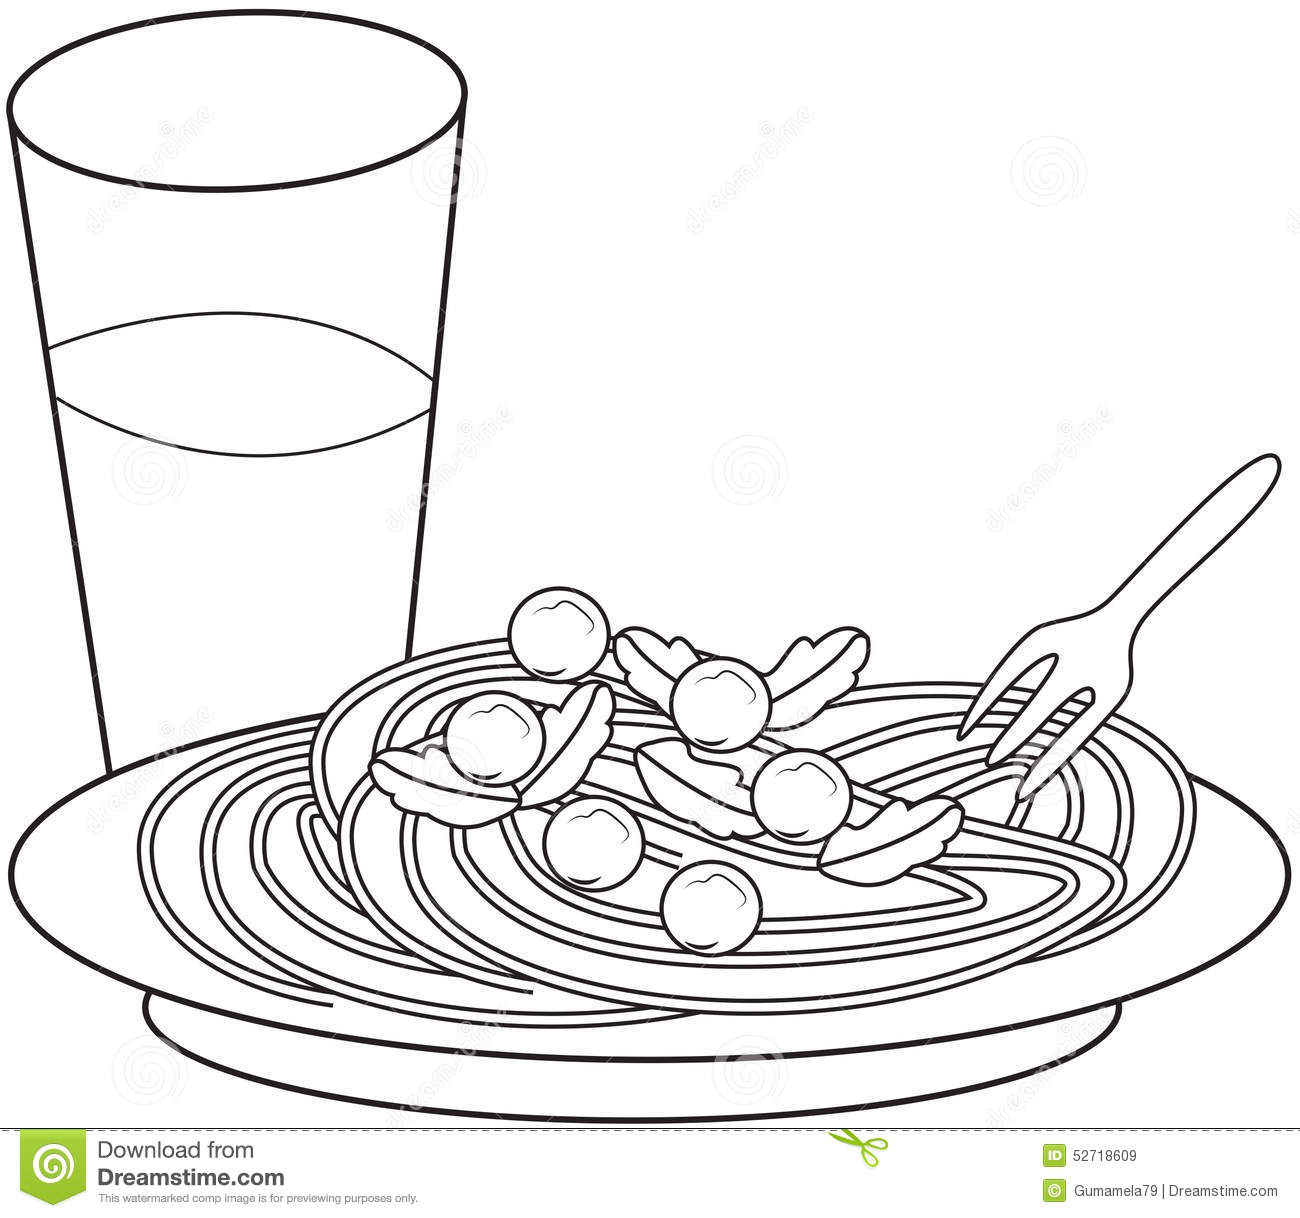 Pasta Food Coloring Pages Pictures To Pin